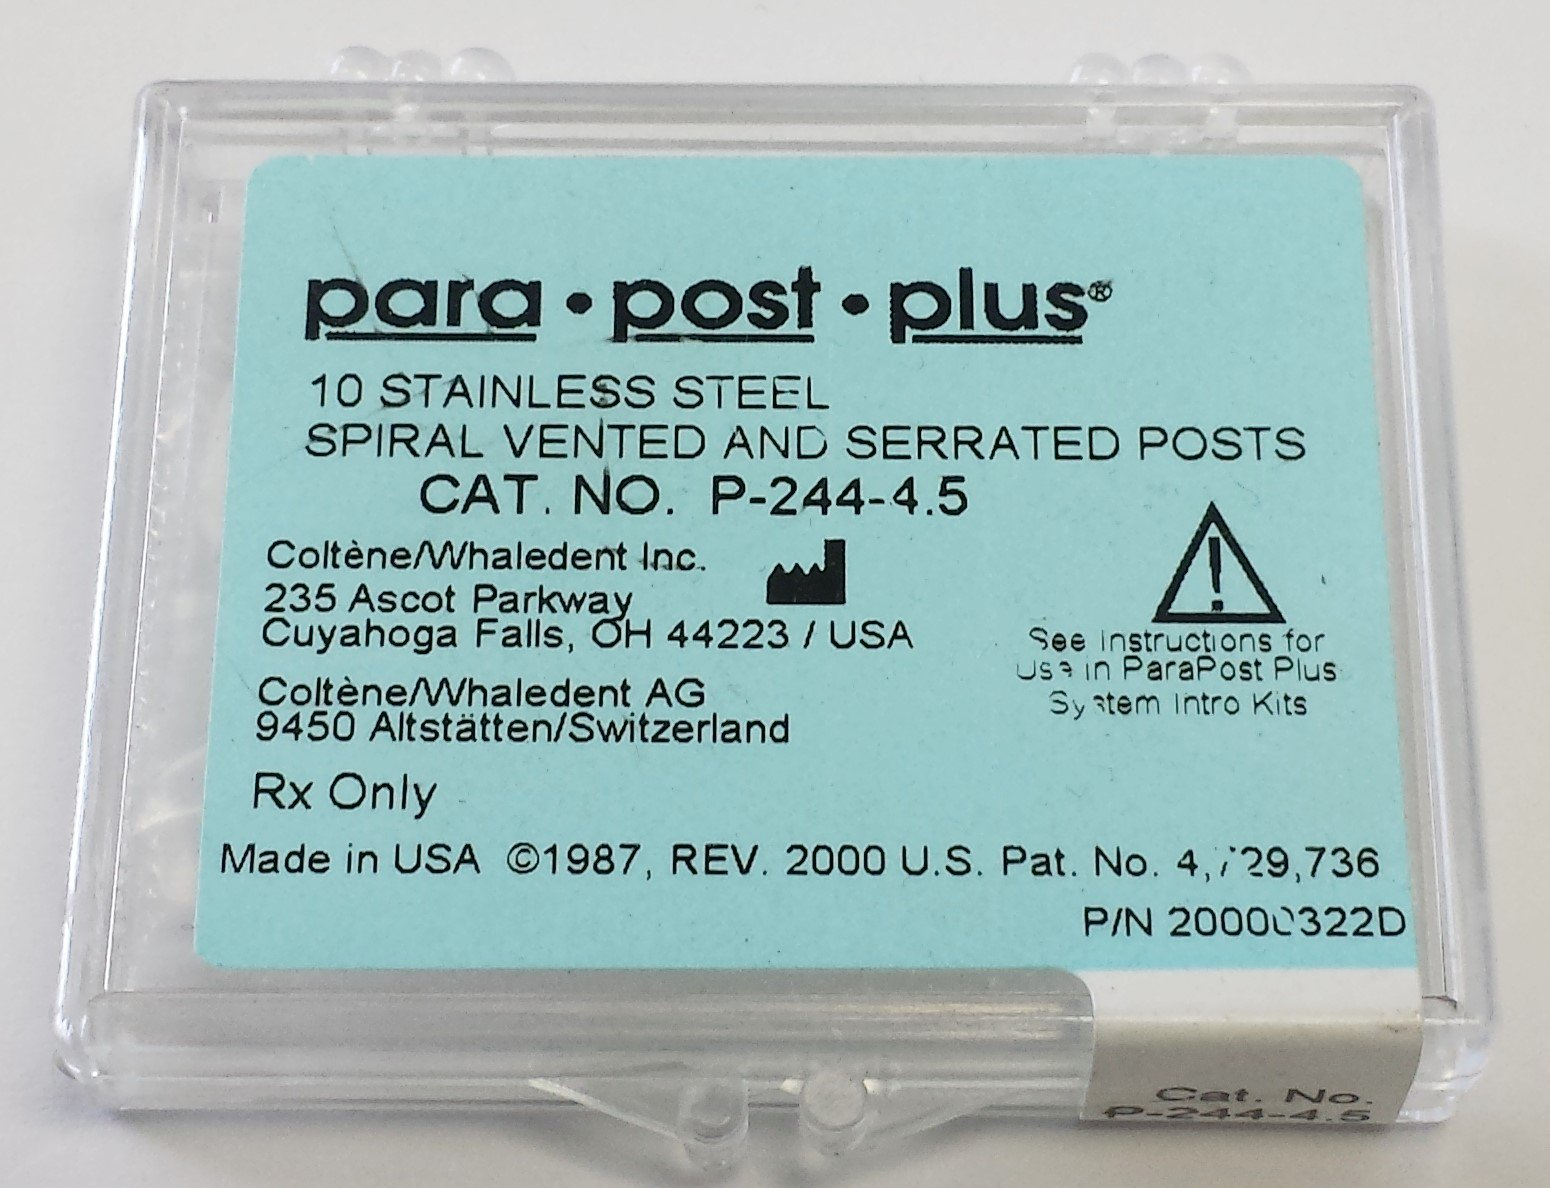 COLTENE/Whaledent ParaPost Plus stainless steel .045 blue 10/pack. PARA POST